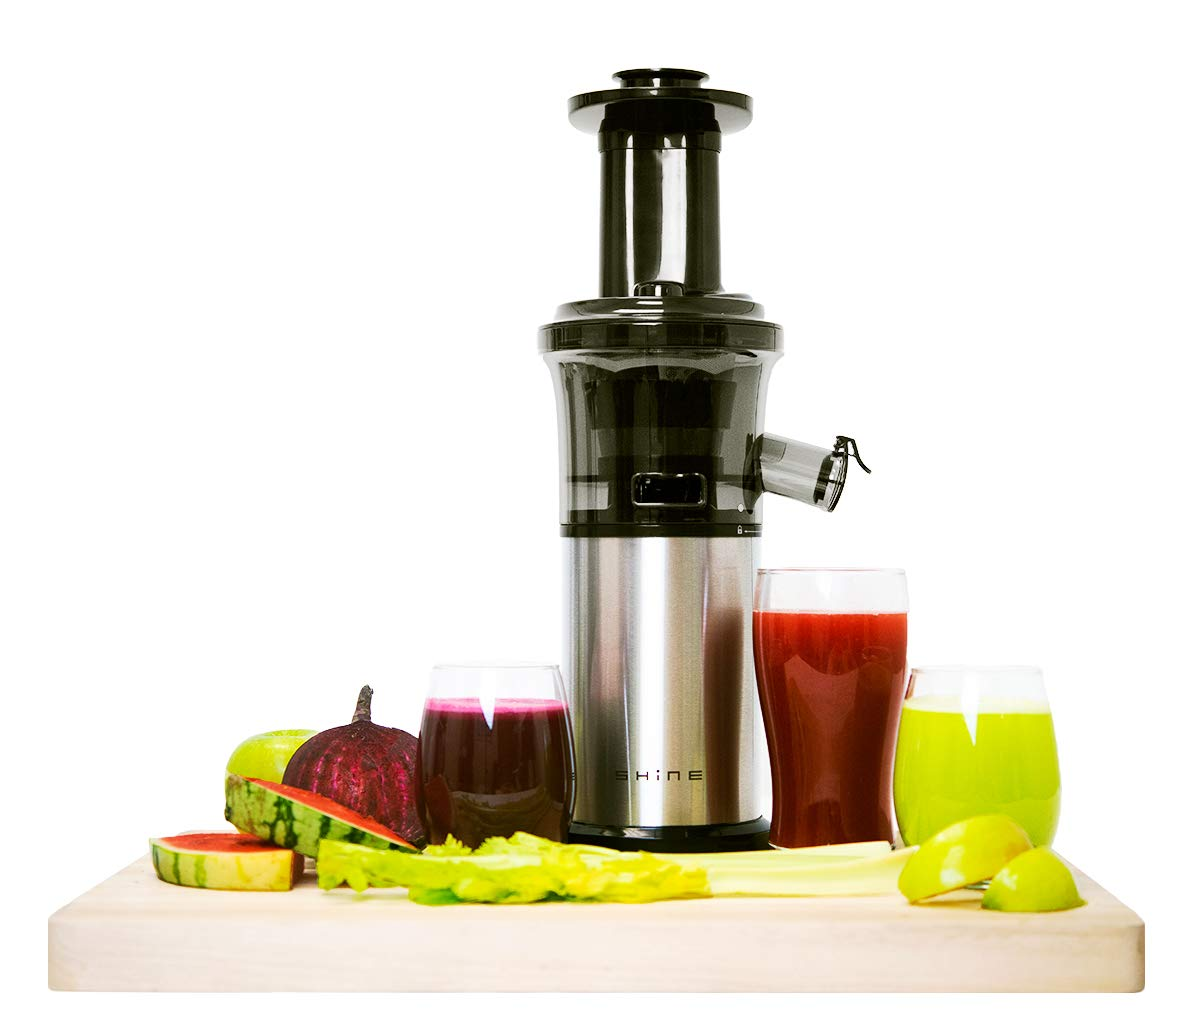 Shine Kitchen Co. Vertical Slow Juicer, SJV-107-A Cold Press, Masticating Juice Extractor, Silver and Black